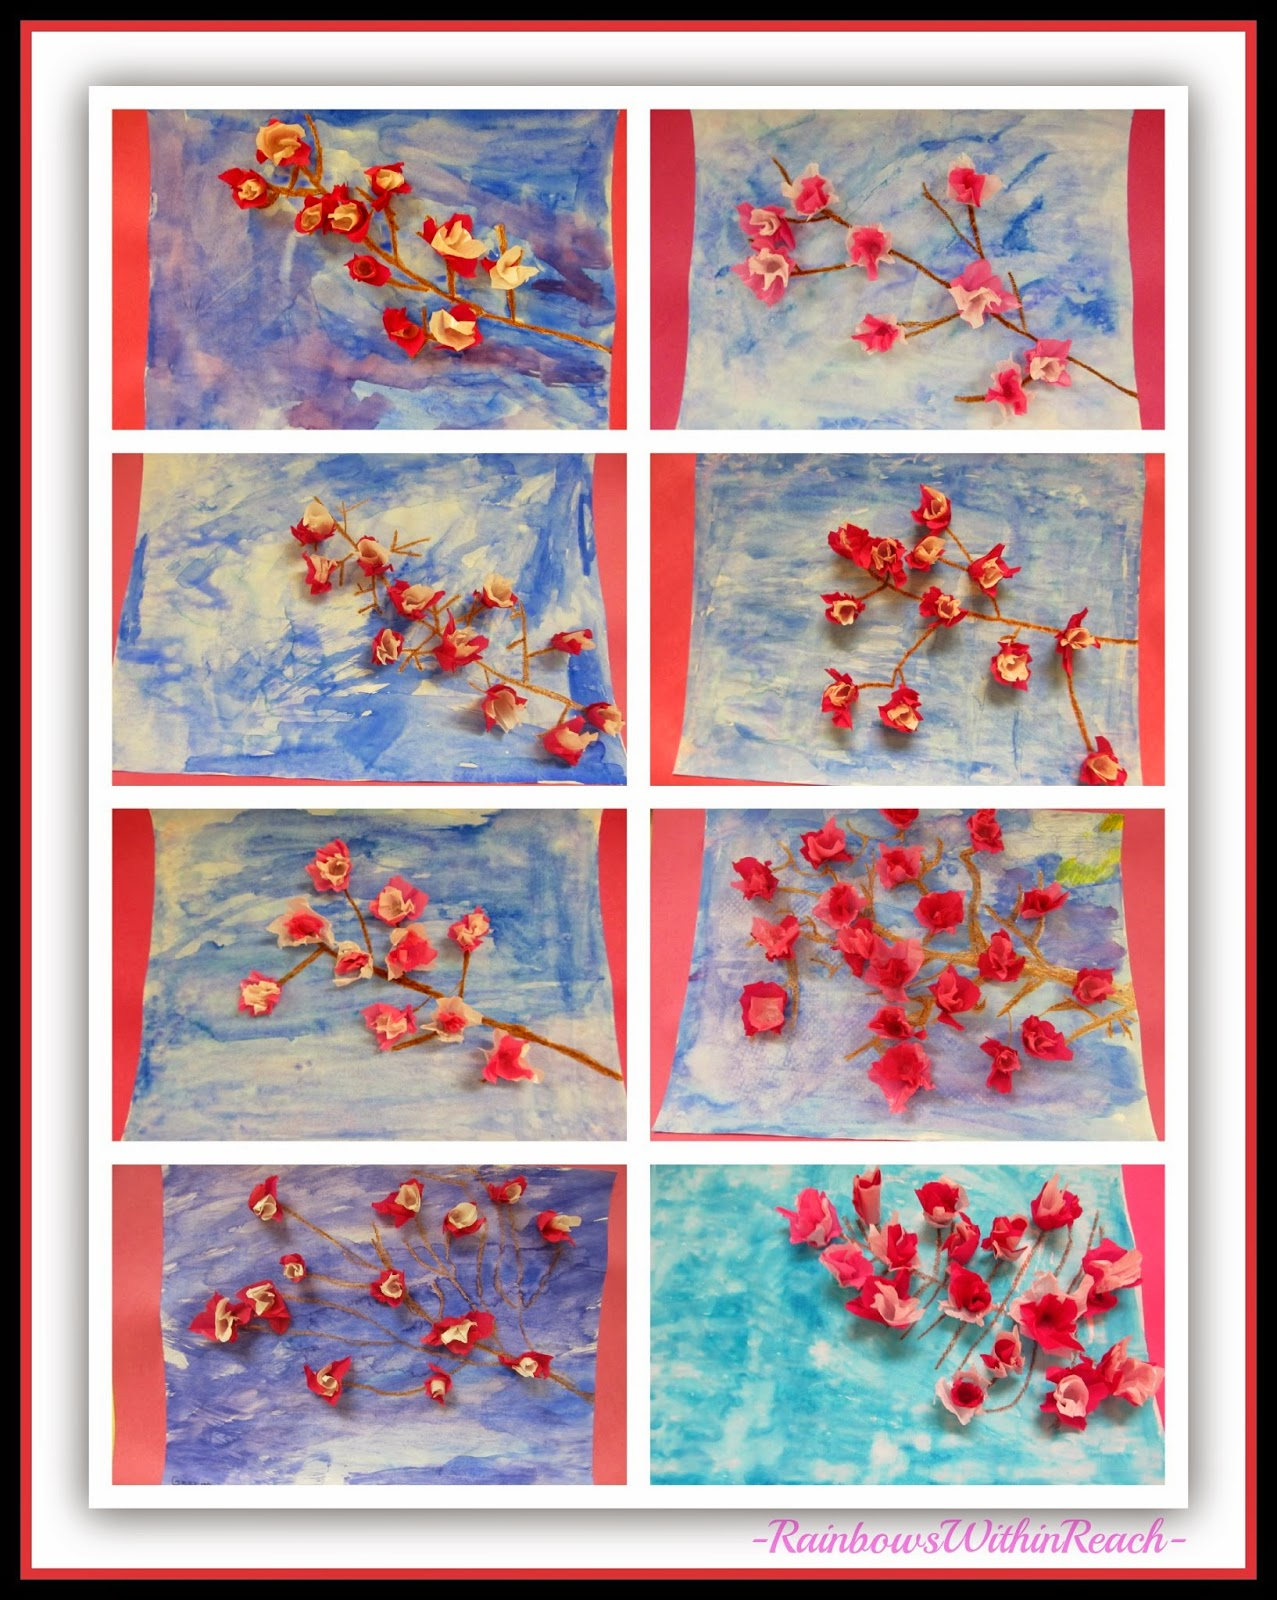 3D Multi-Media Spring Blossoms in Tissue Paper at RainbowsWithinReach